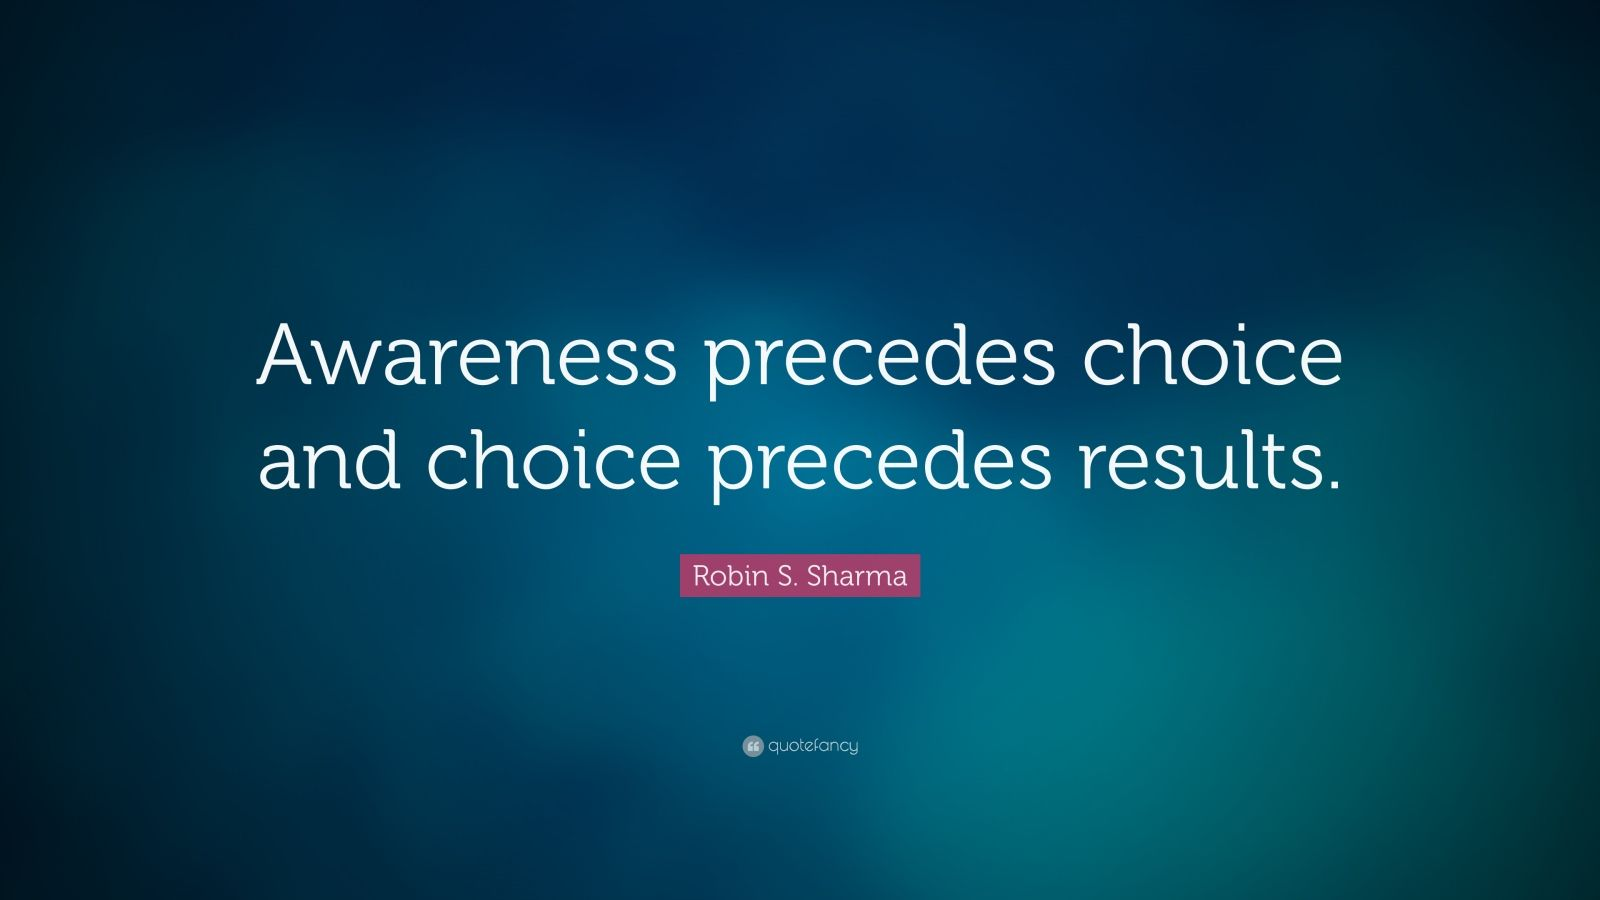 Persistence Quotes Wallpapers Robin S Sharma Quote Awareness Precedes Choice And